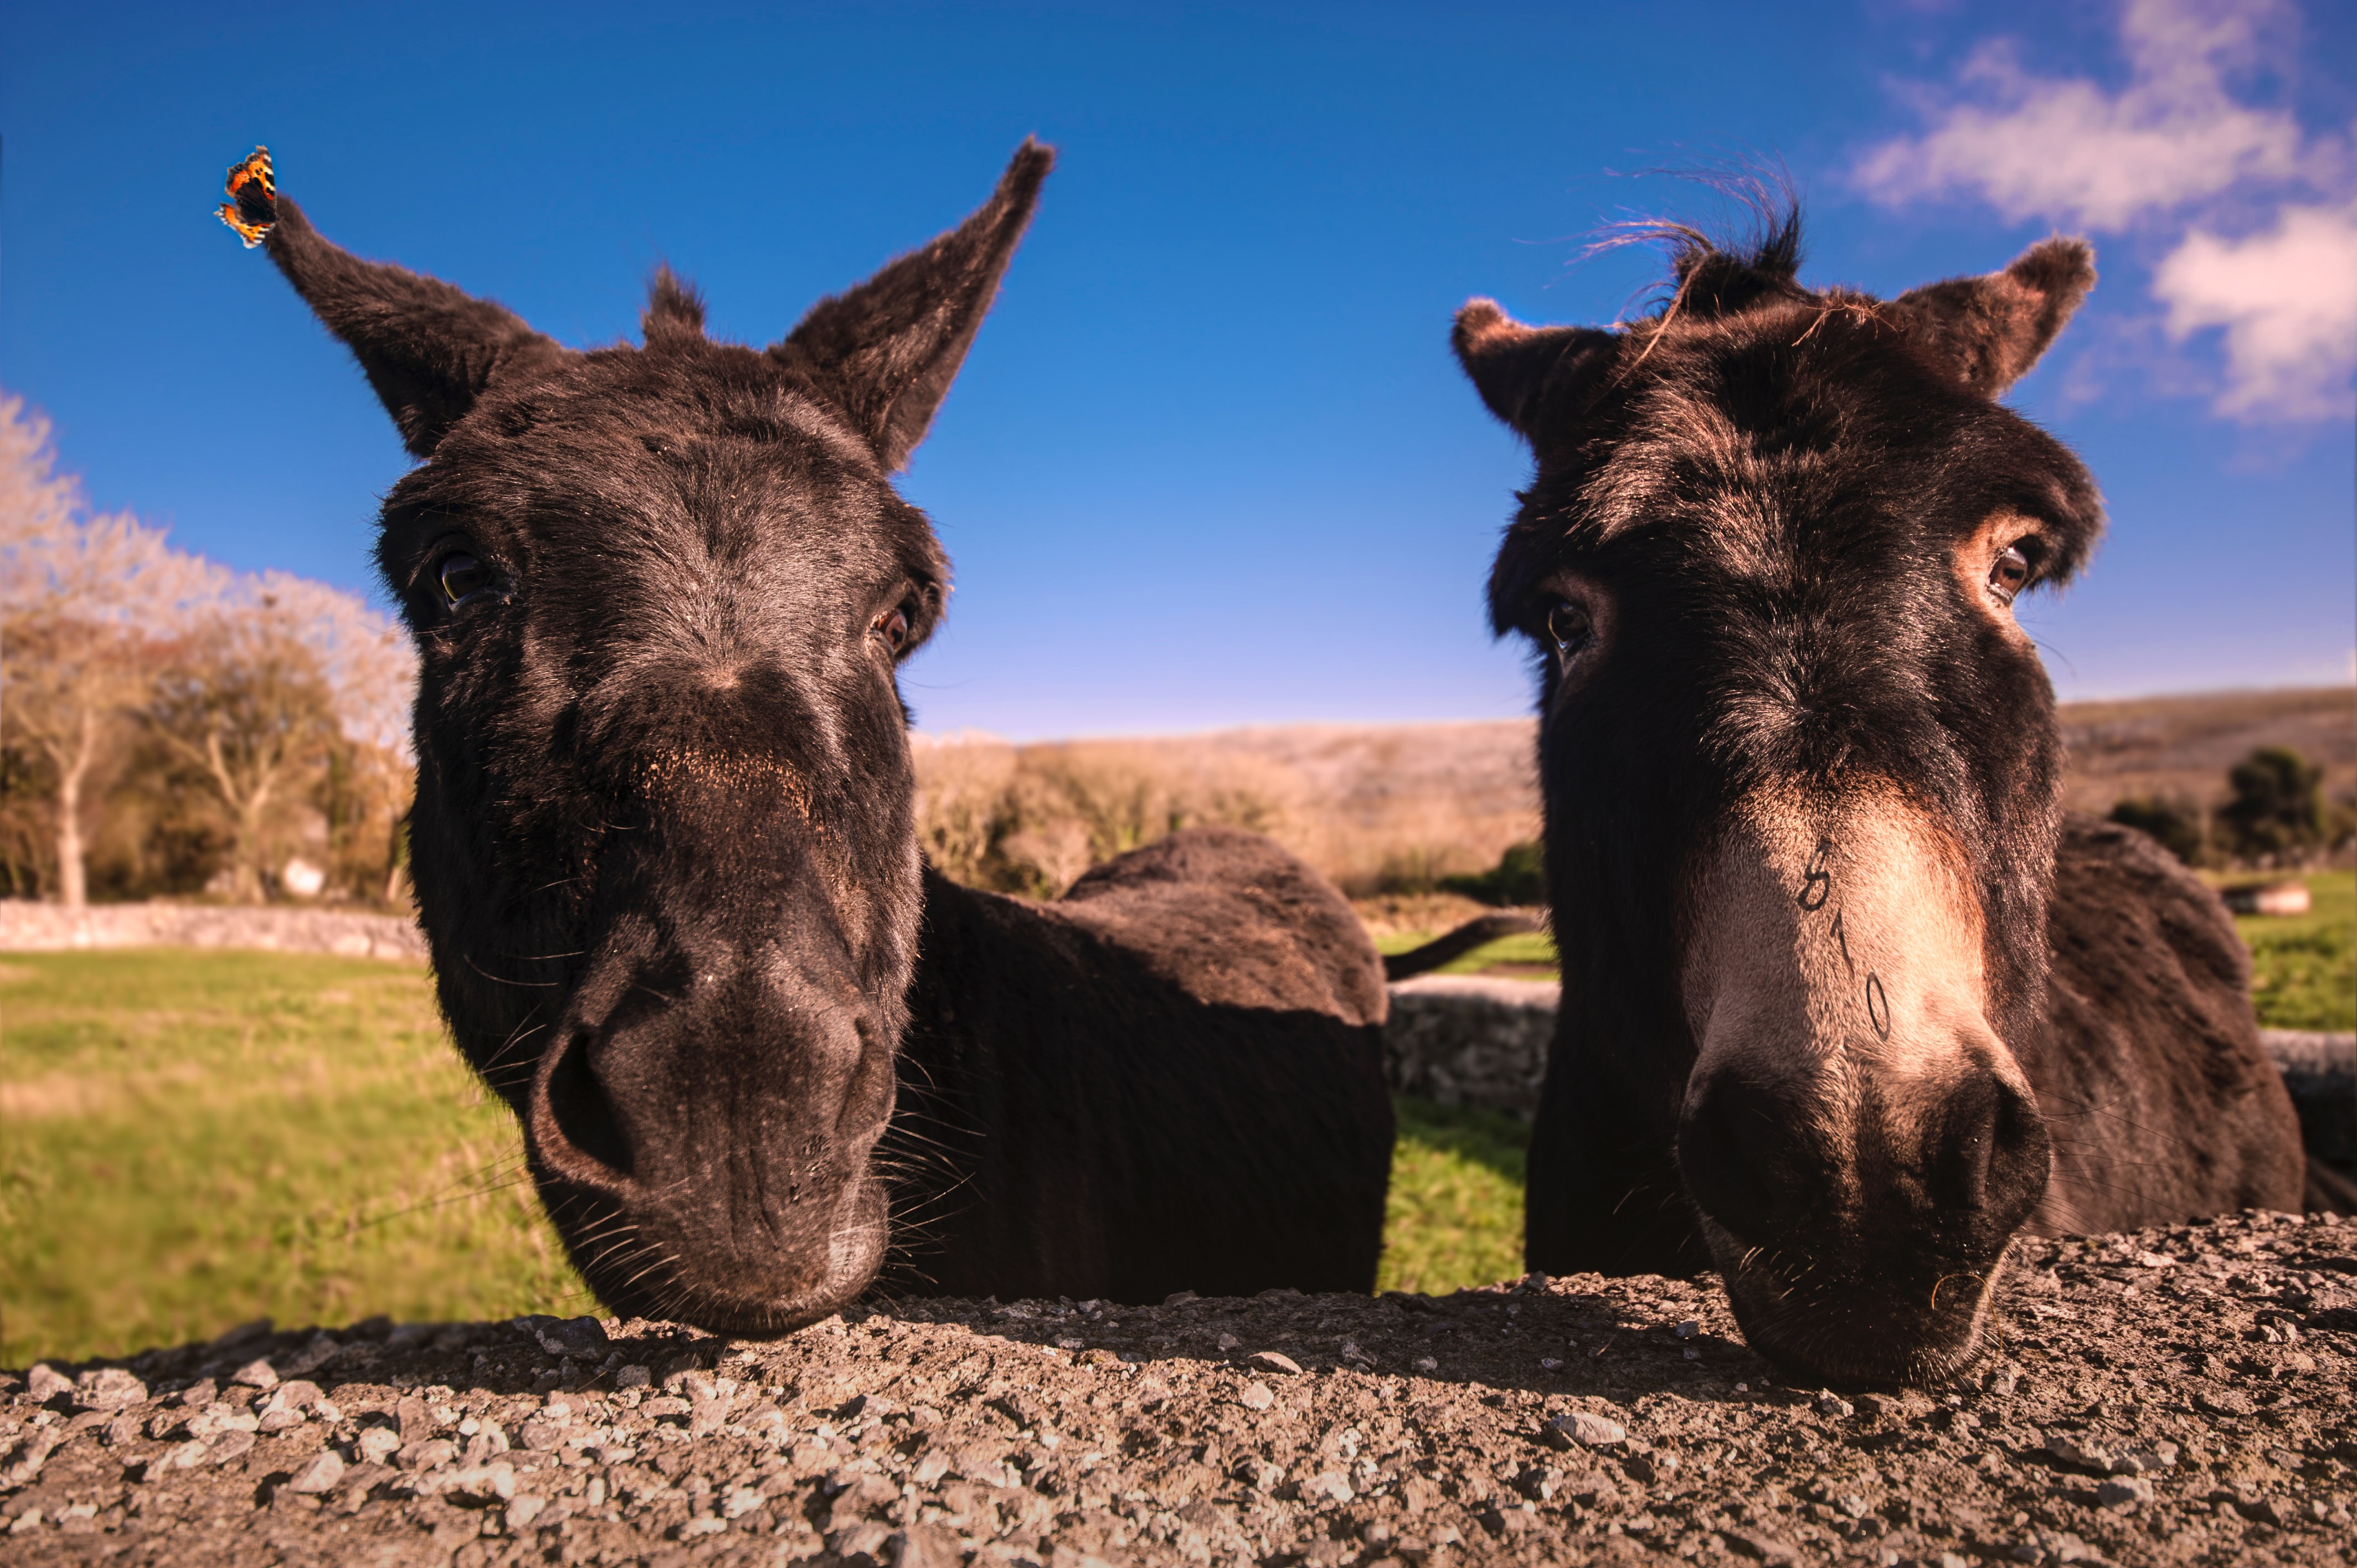 Two donkeys lamenting the loss of a comfy bathtub; image by Magdalena Smolnicka, via Unsplash.com.